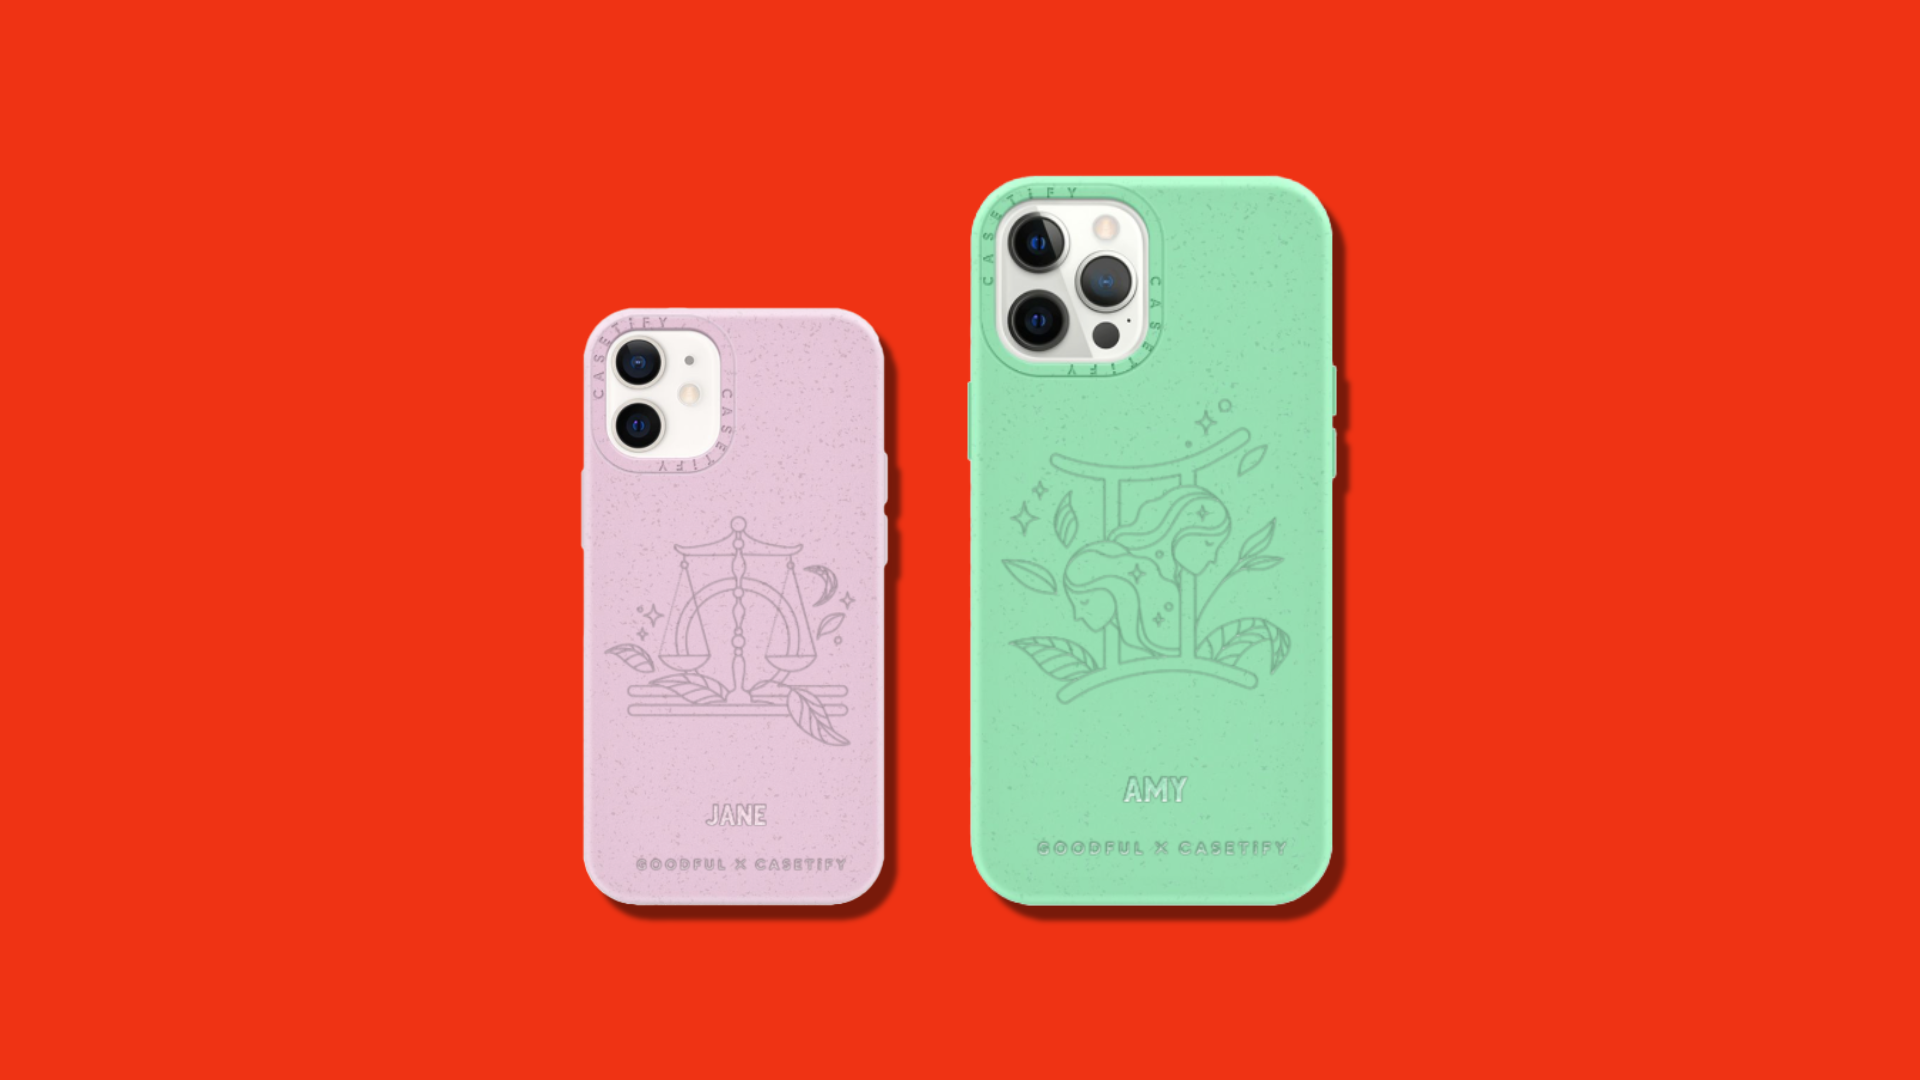 An iPhone 12 mini and iPhone 12 Pro Max case on a red background.